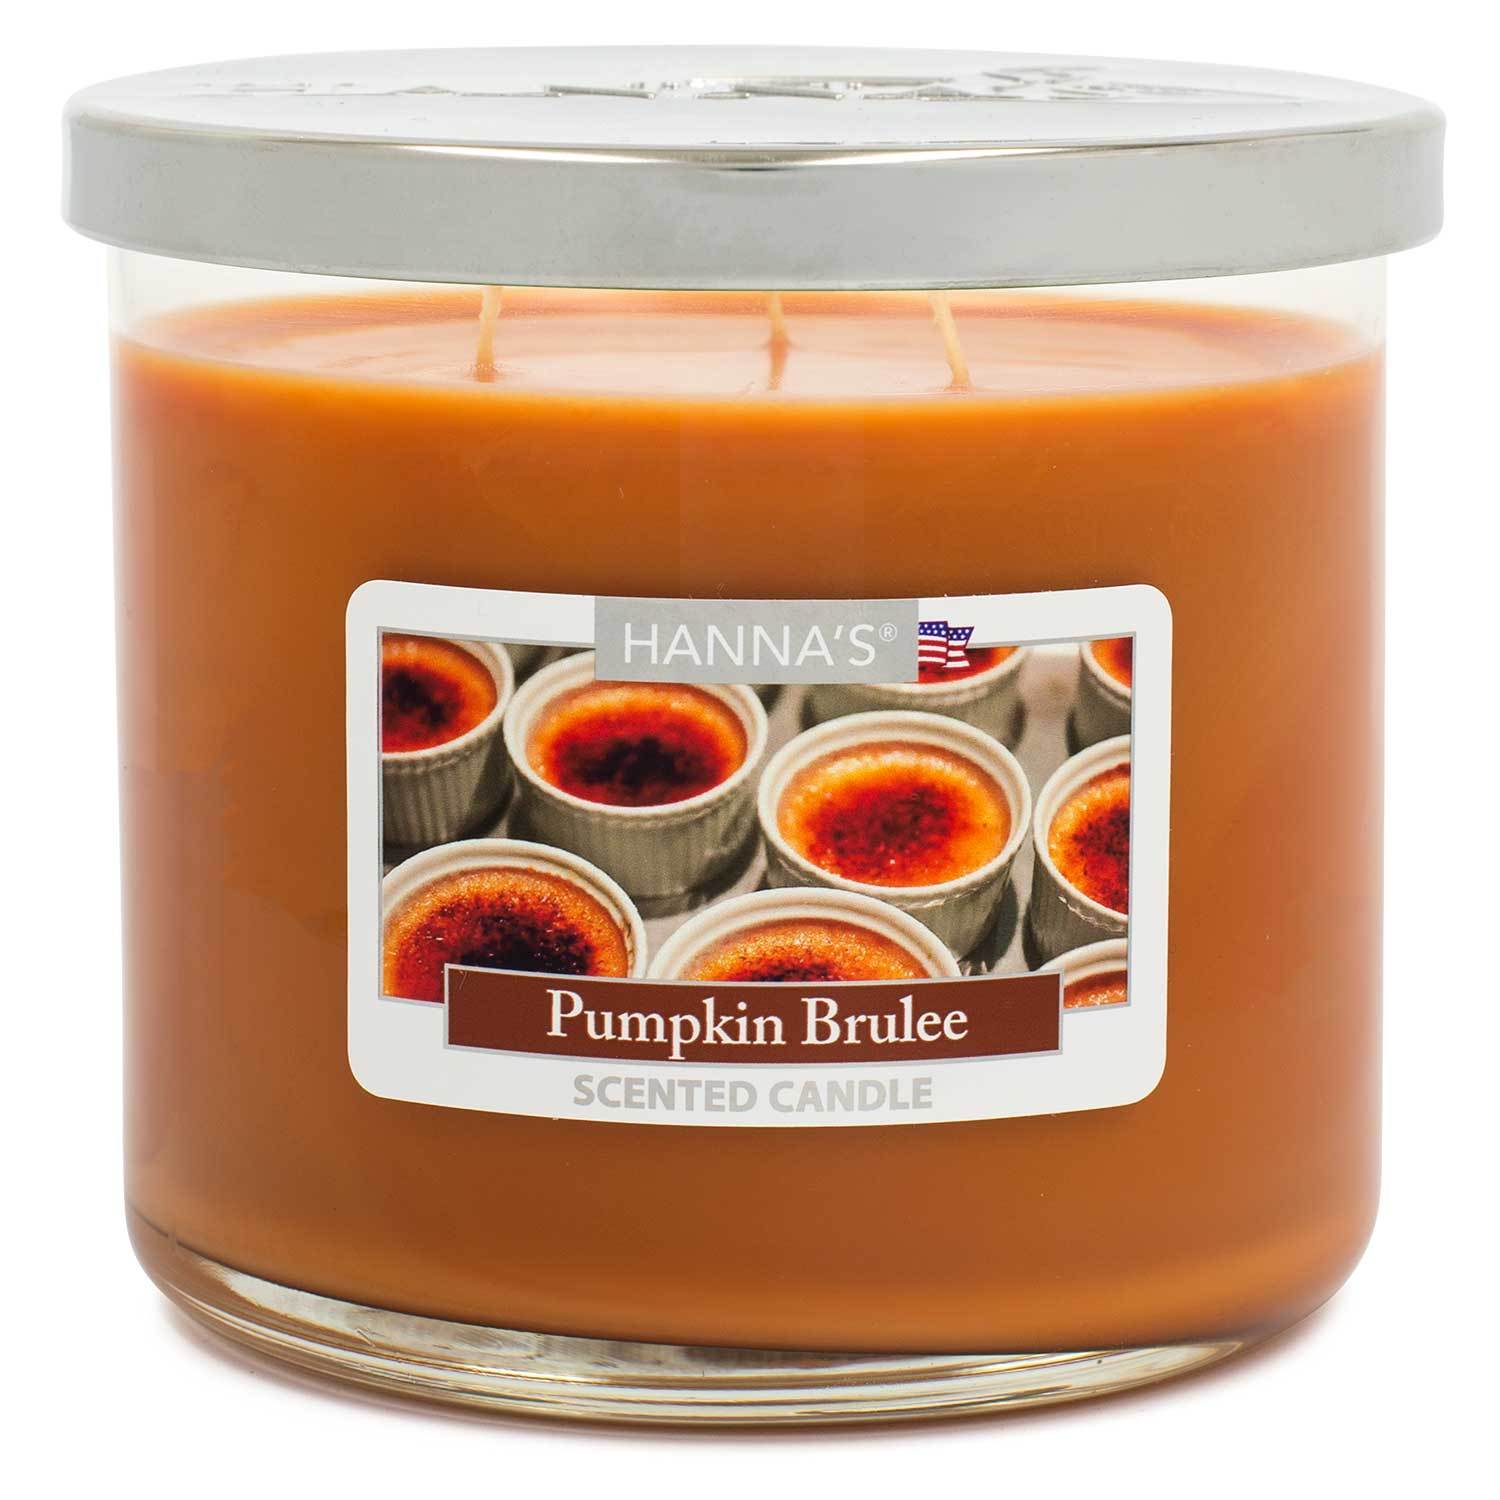 Pumpkin Brulee Scented Large 3 wick Candle Candles Candlemart.com $ 11.99